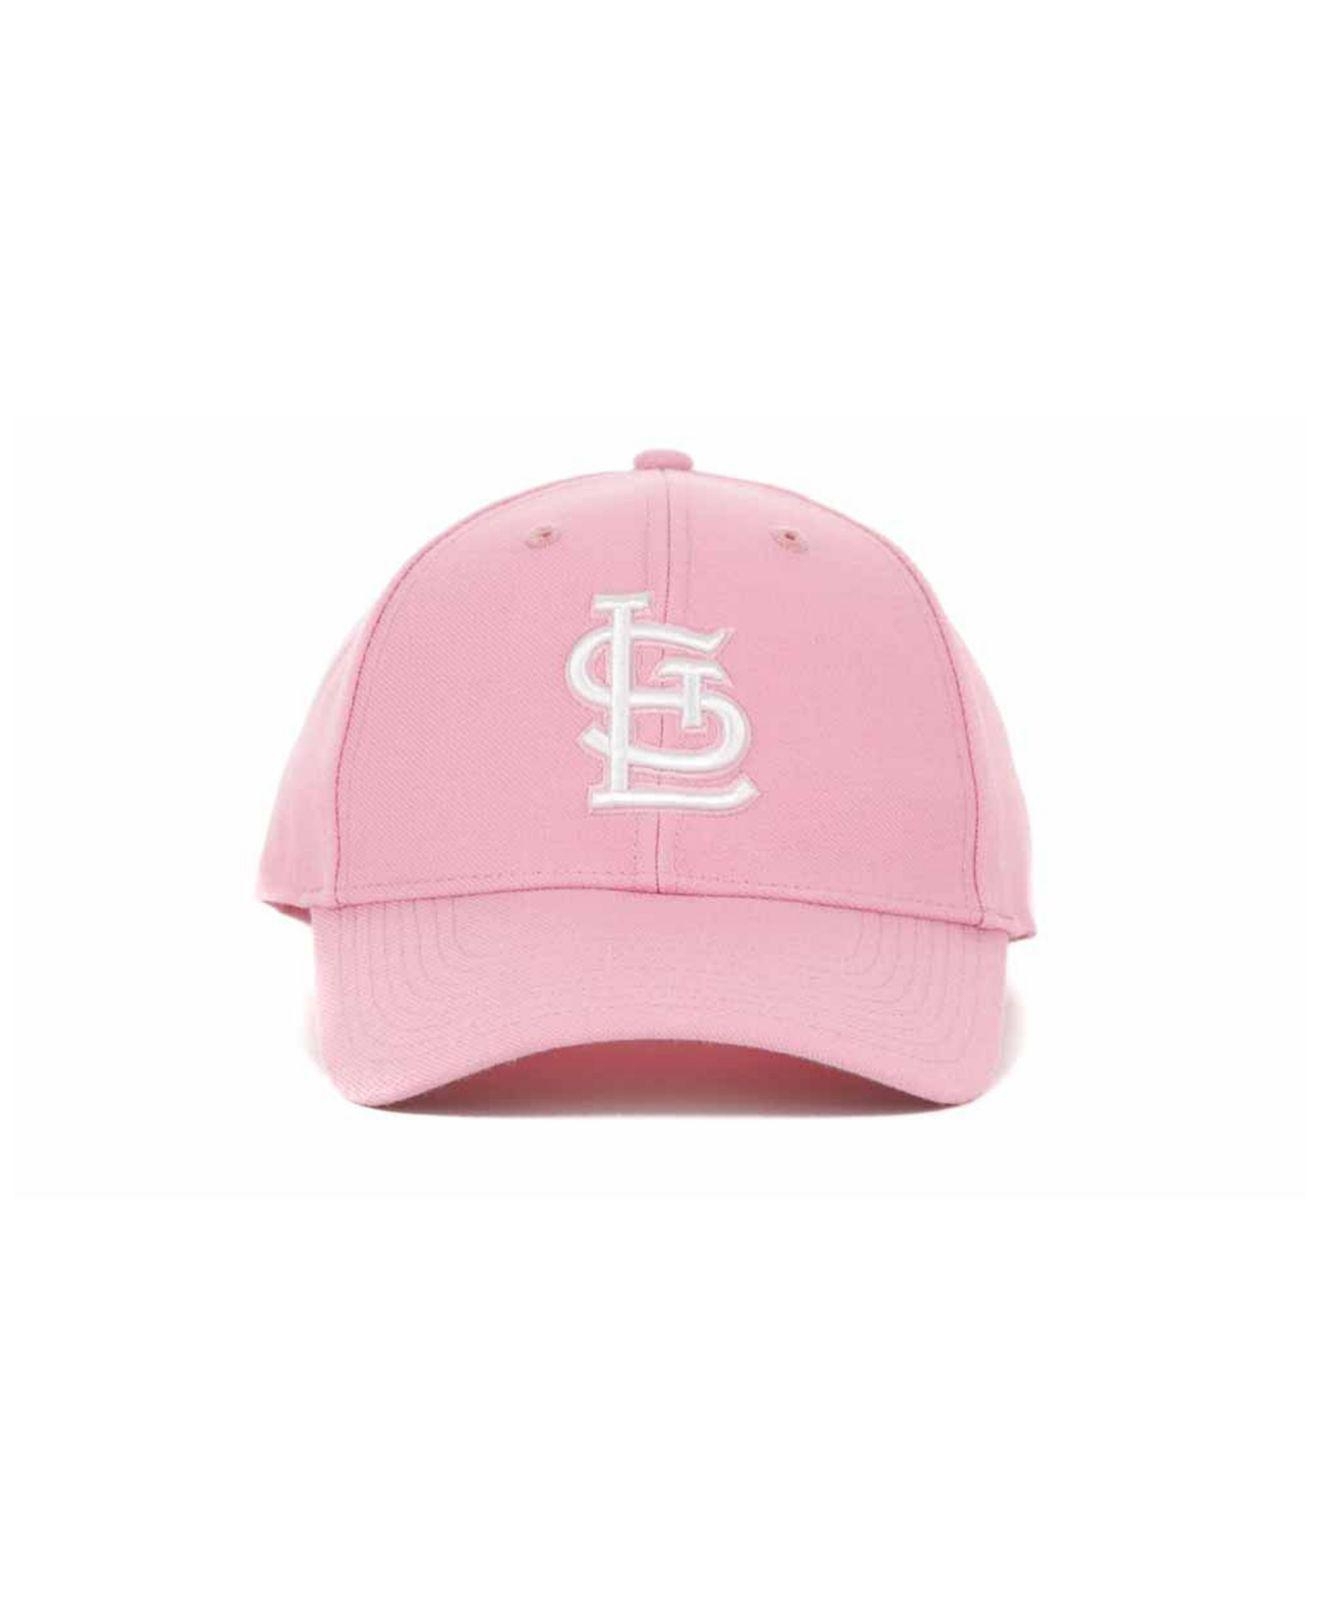 7bae153acf011 ... purchase lyst 47 brand st. louis cardinals mvp cap in pink for men  05a0c 62983